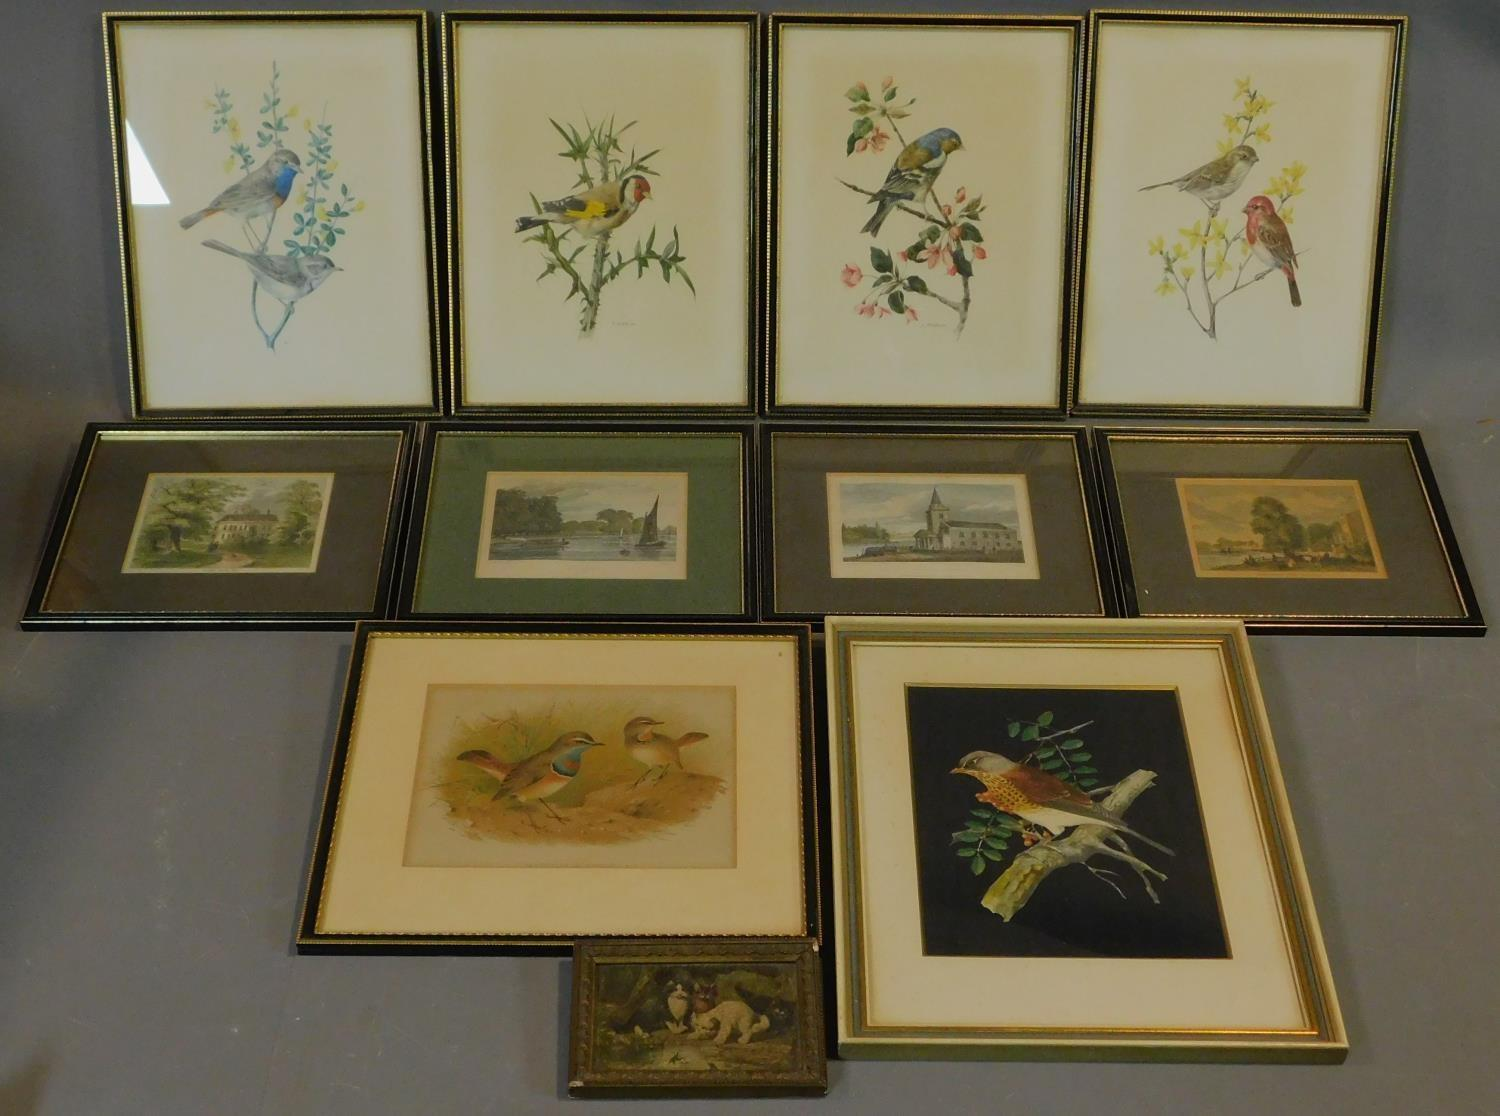 A miscellaneous collection of eleven framed and glazed prints of avian and architectural interest.